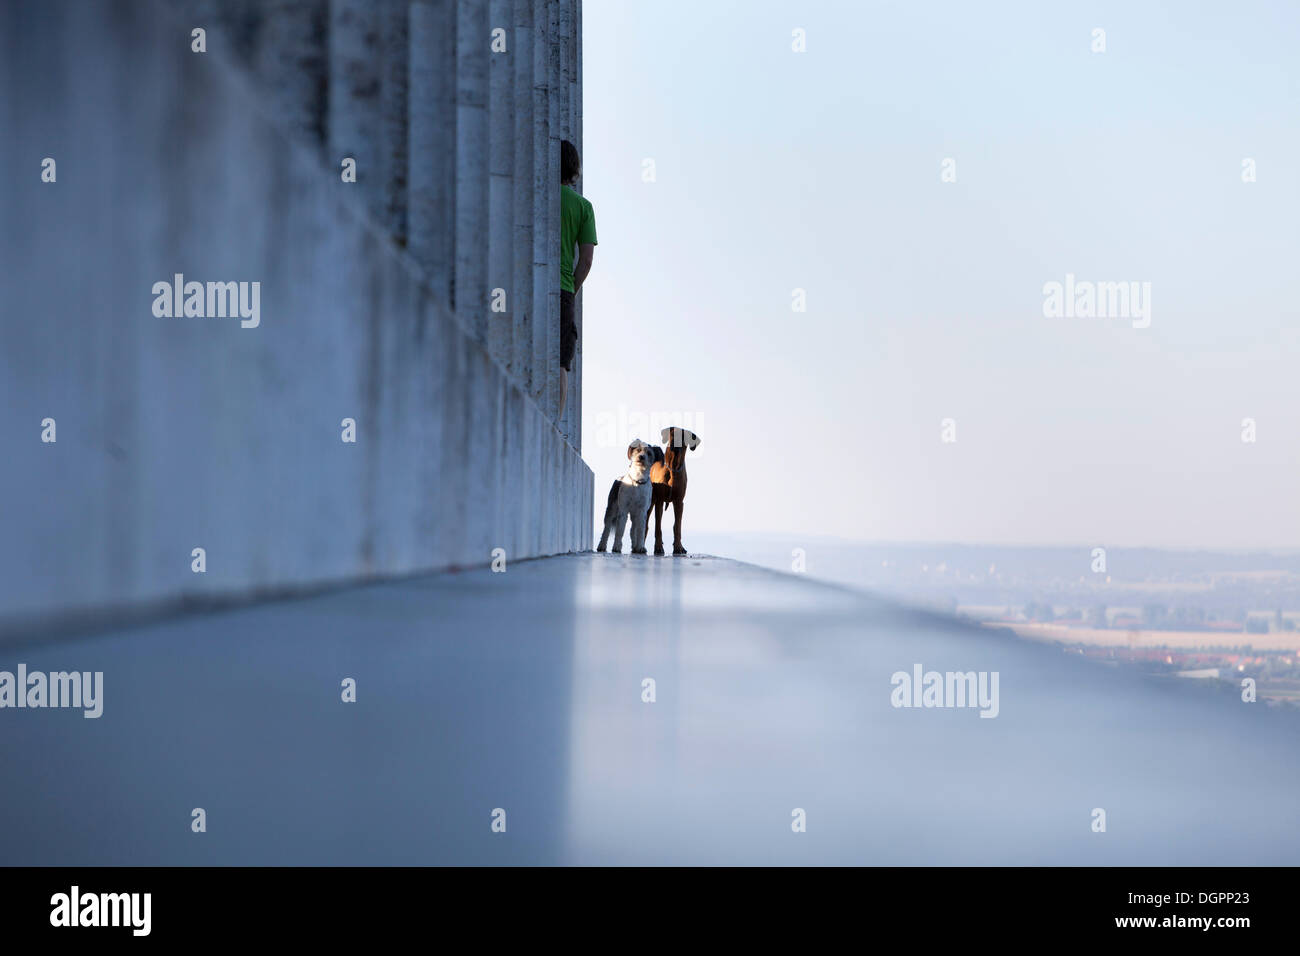 Two dogs on the Walhalla with a man standing almost hidden between the columns, Donaustauf, Bavaria - Stock Image